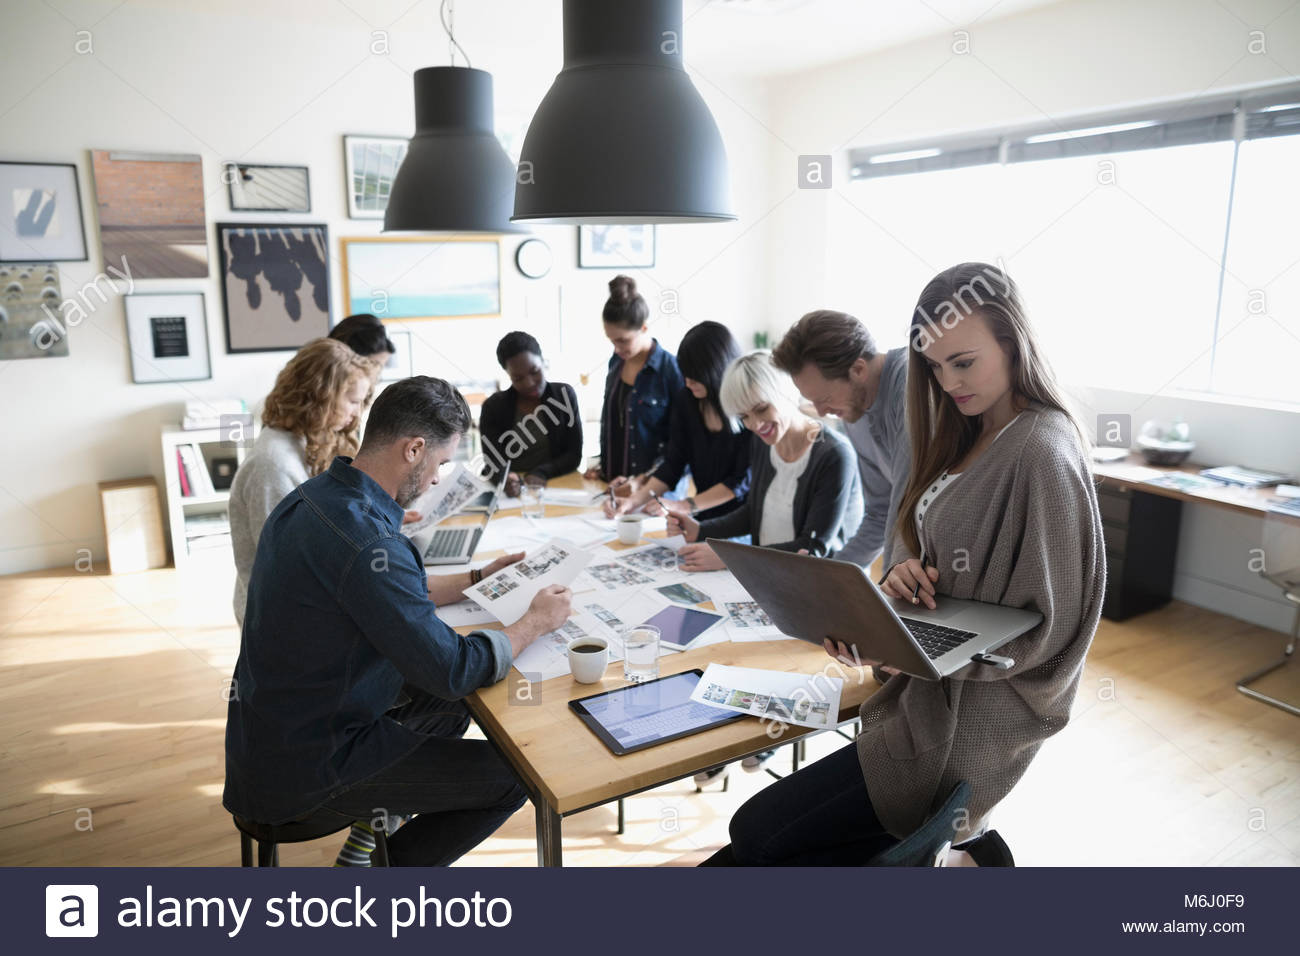 Production team reviewing photo proofs in office meeting - Stock Image